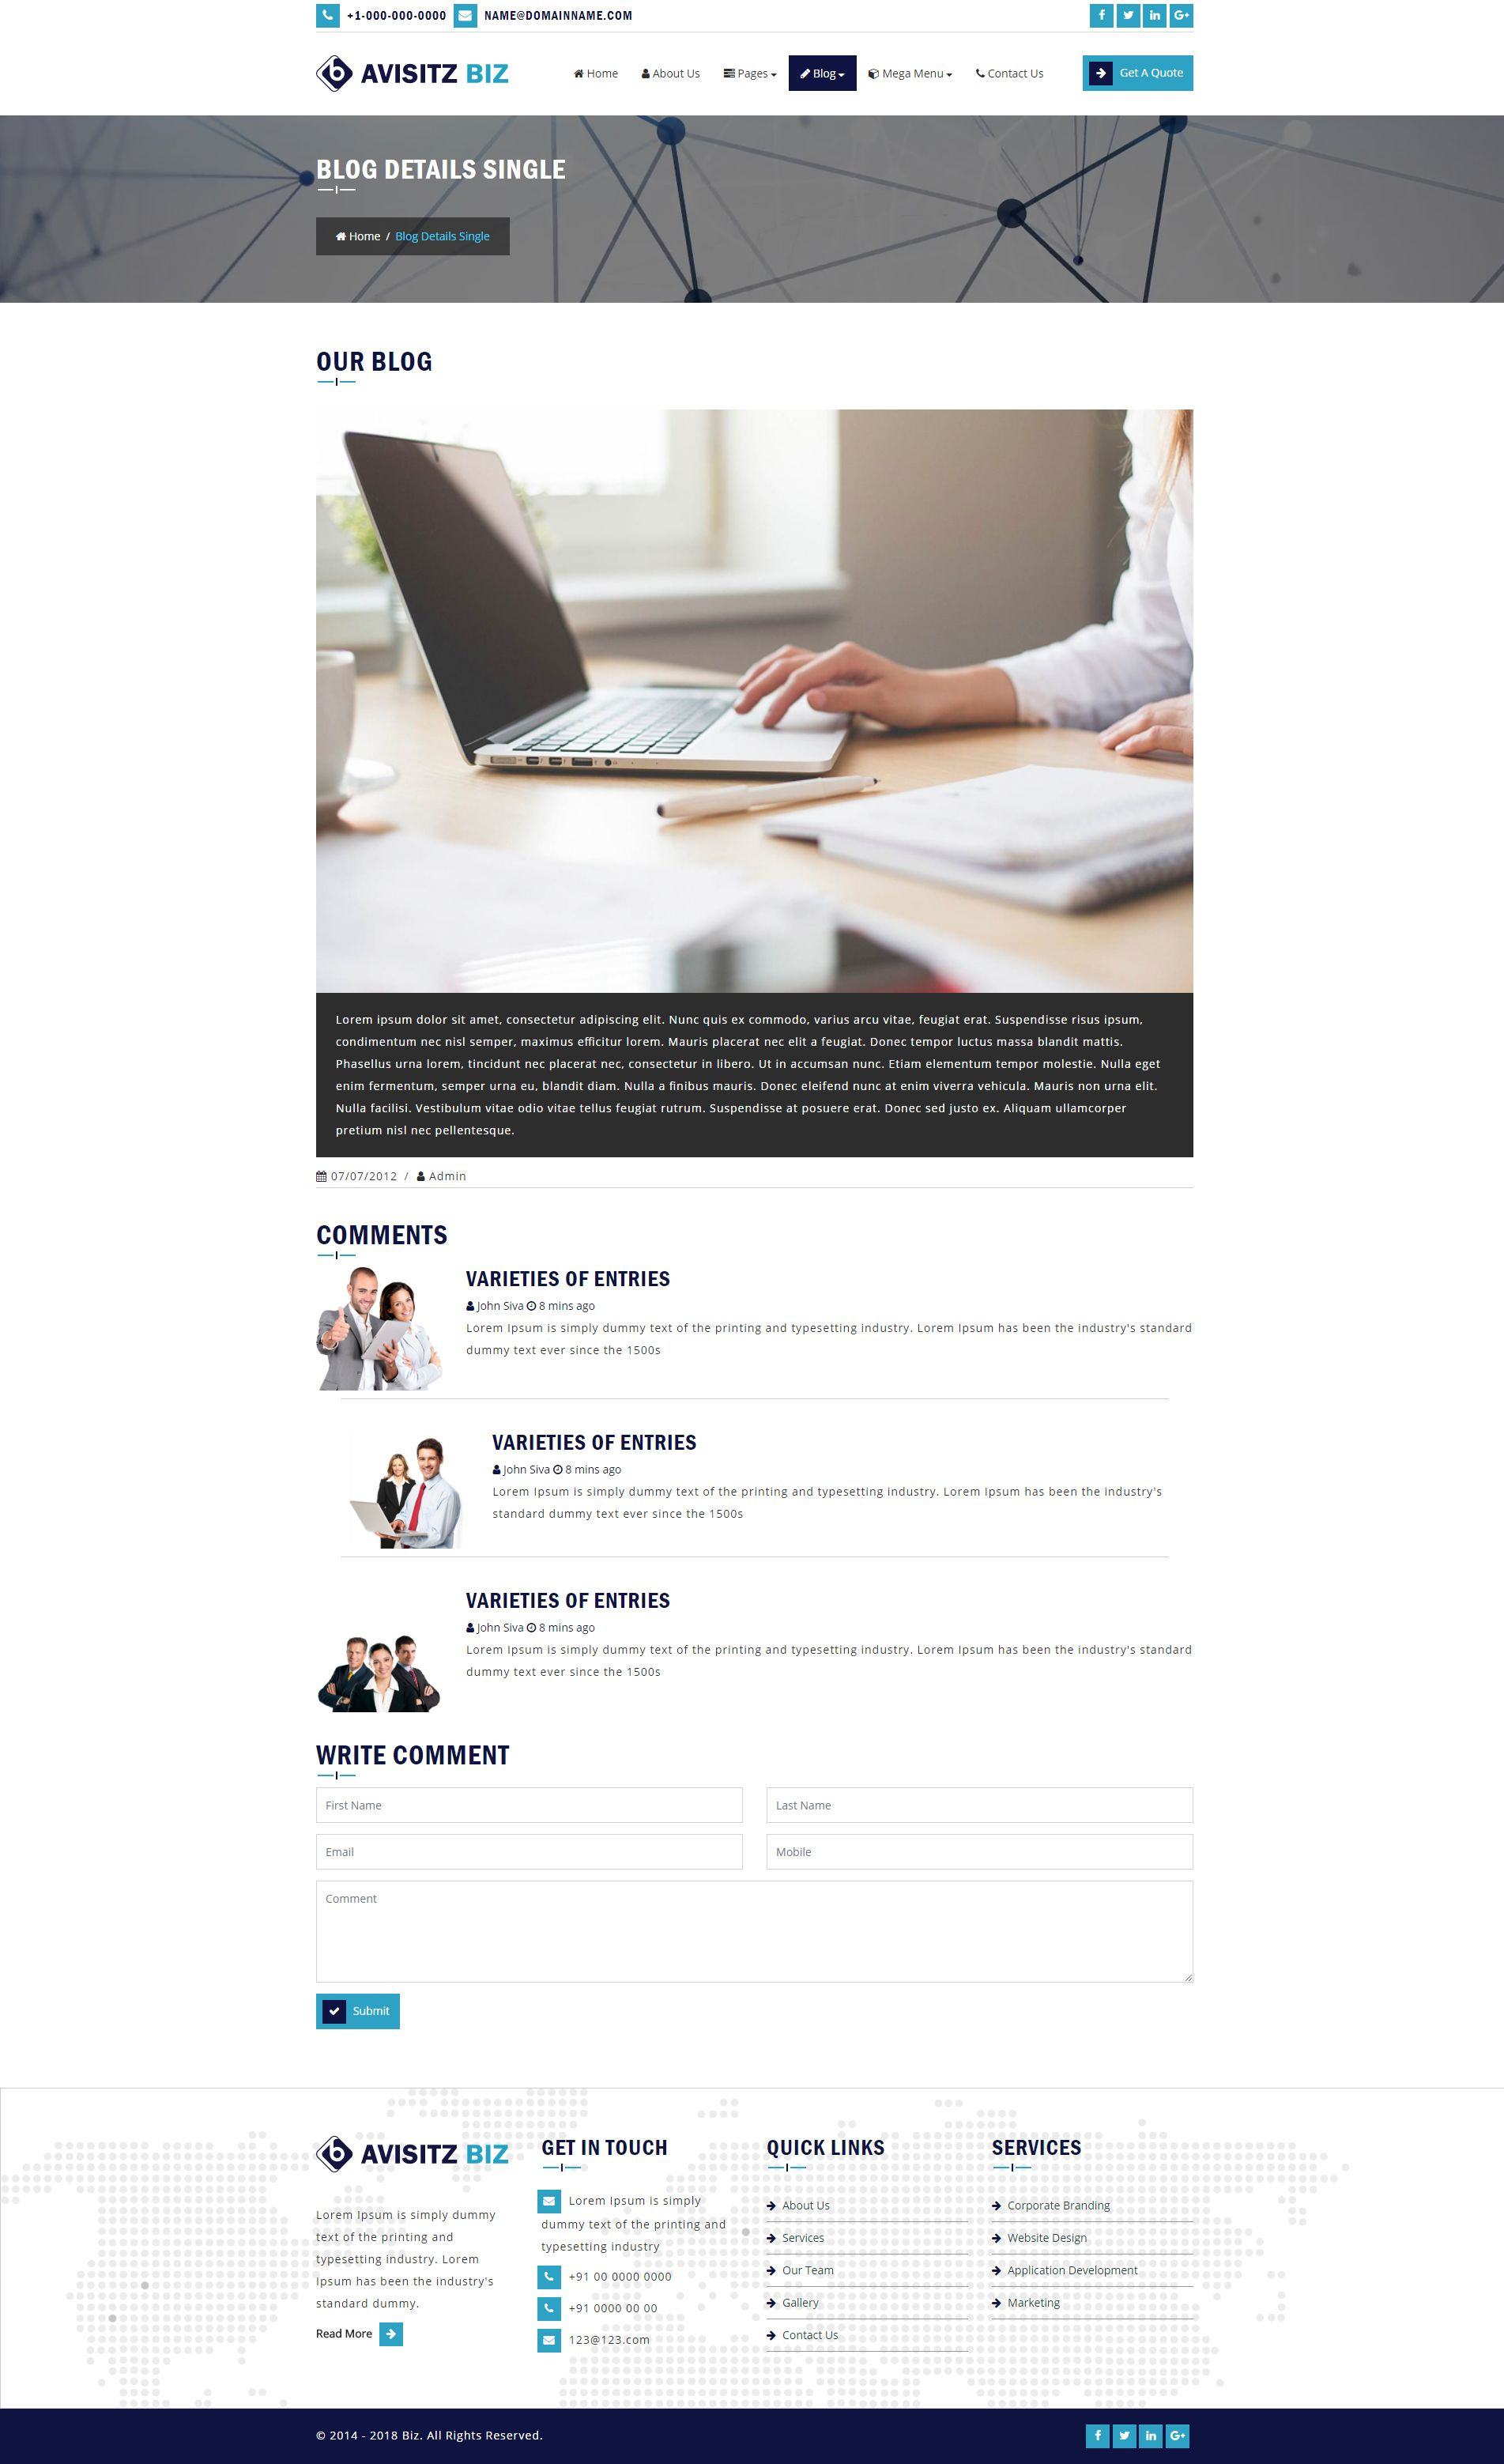 Avisitz Biz - Business Technology HTML5 Responsive Screenshot 5